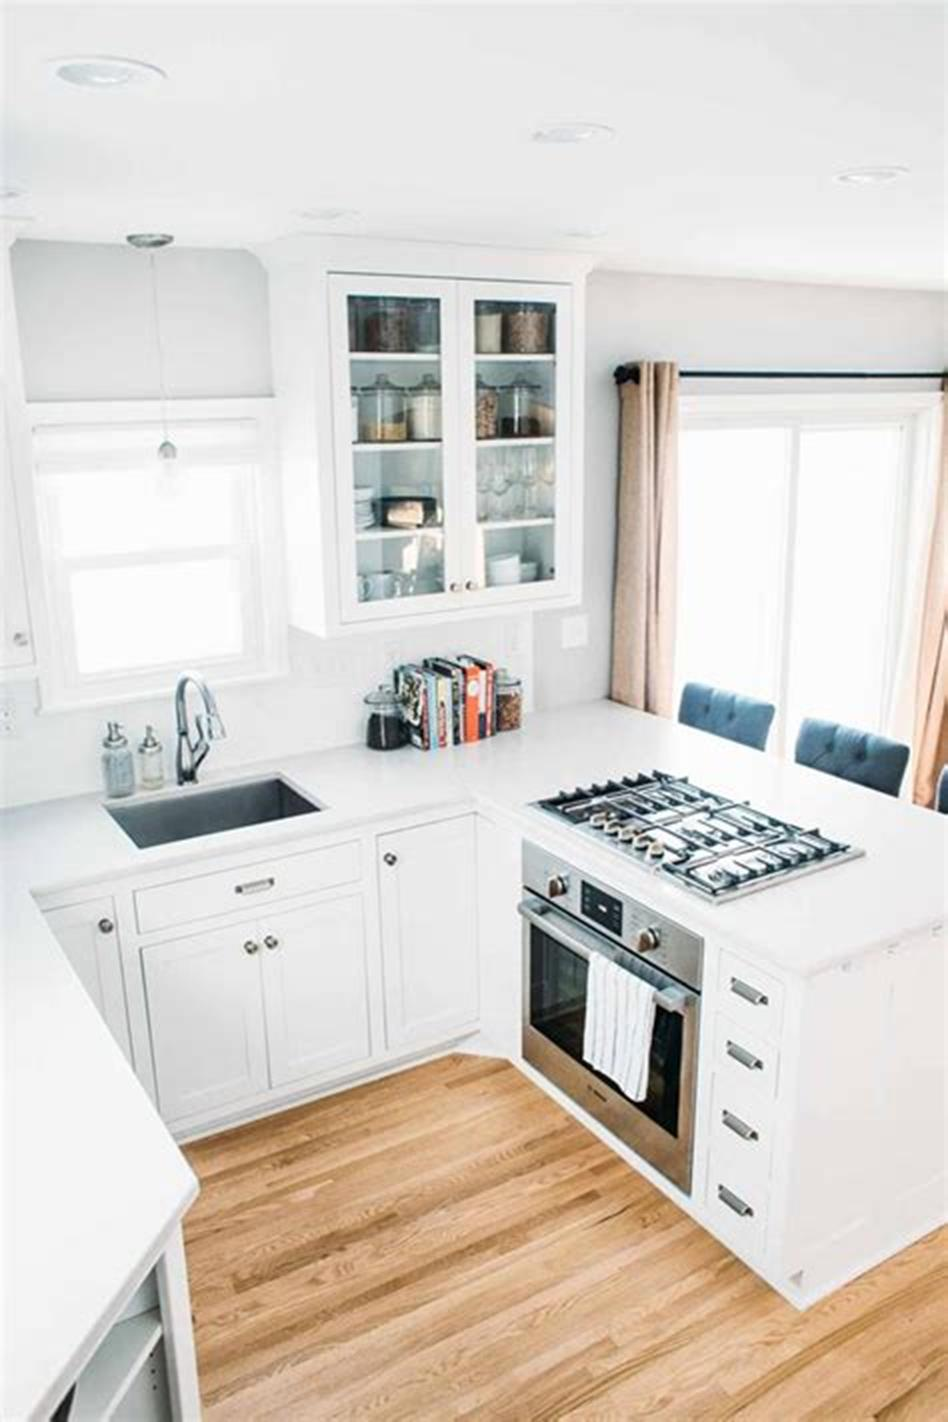 43 Amazing Kitchen Remodeling Ideas for Small Kitchens 2019 29